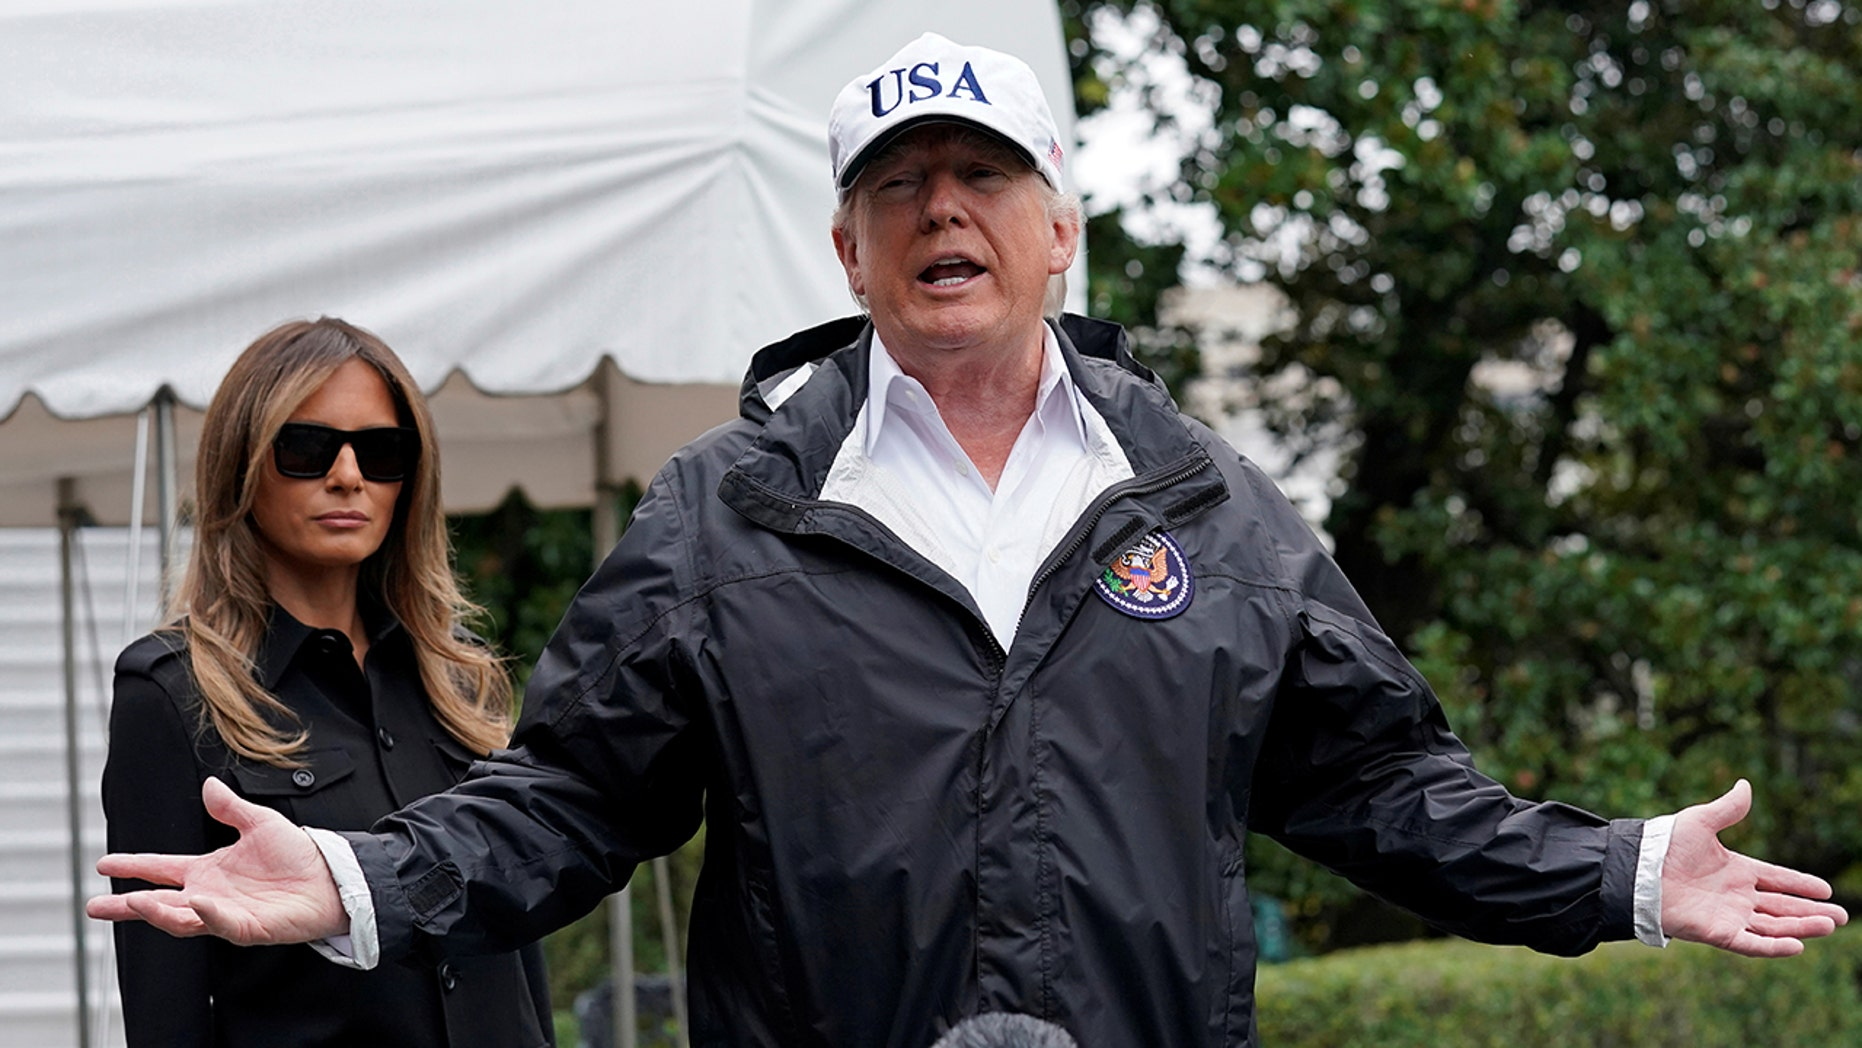 President Trump talks to reporters Thursday as he leaves the White House to asses damage from Hurricane Irma in Florida